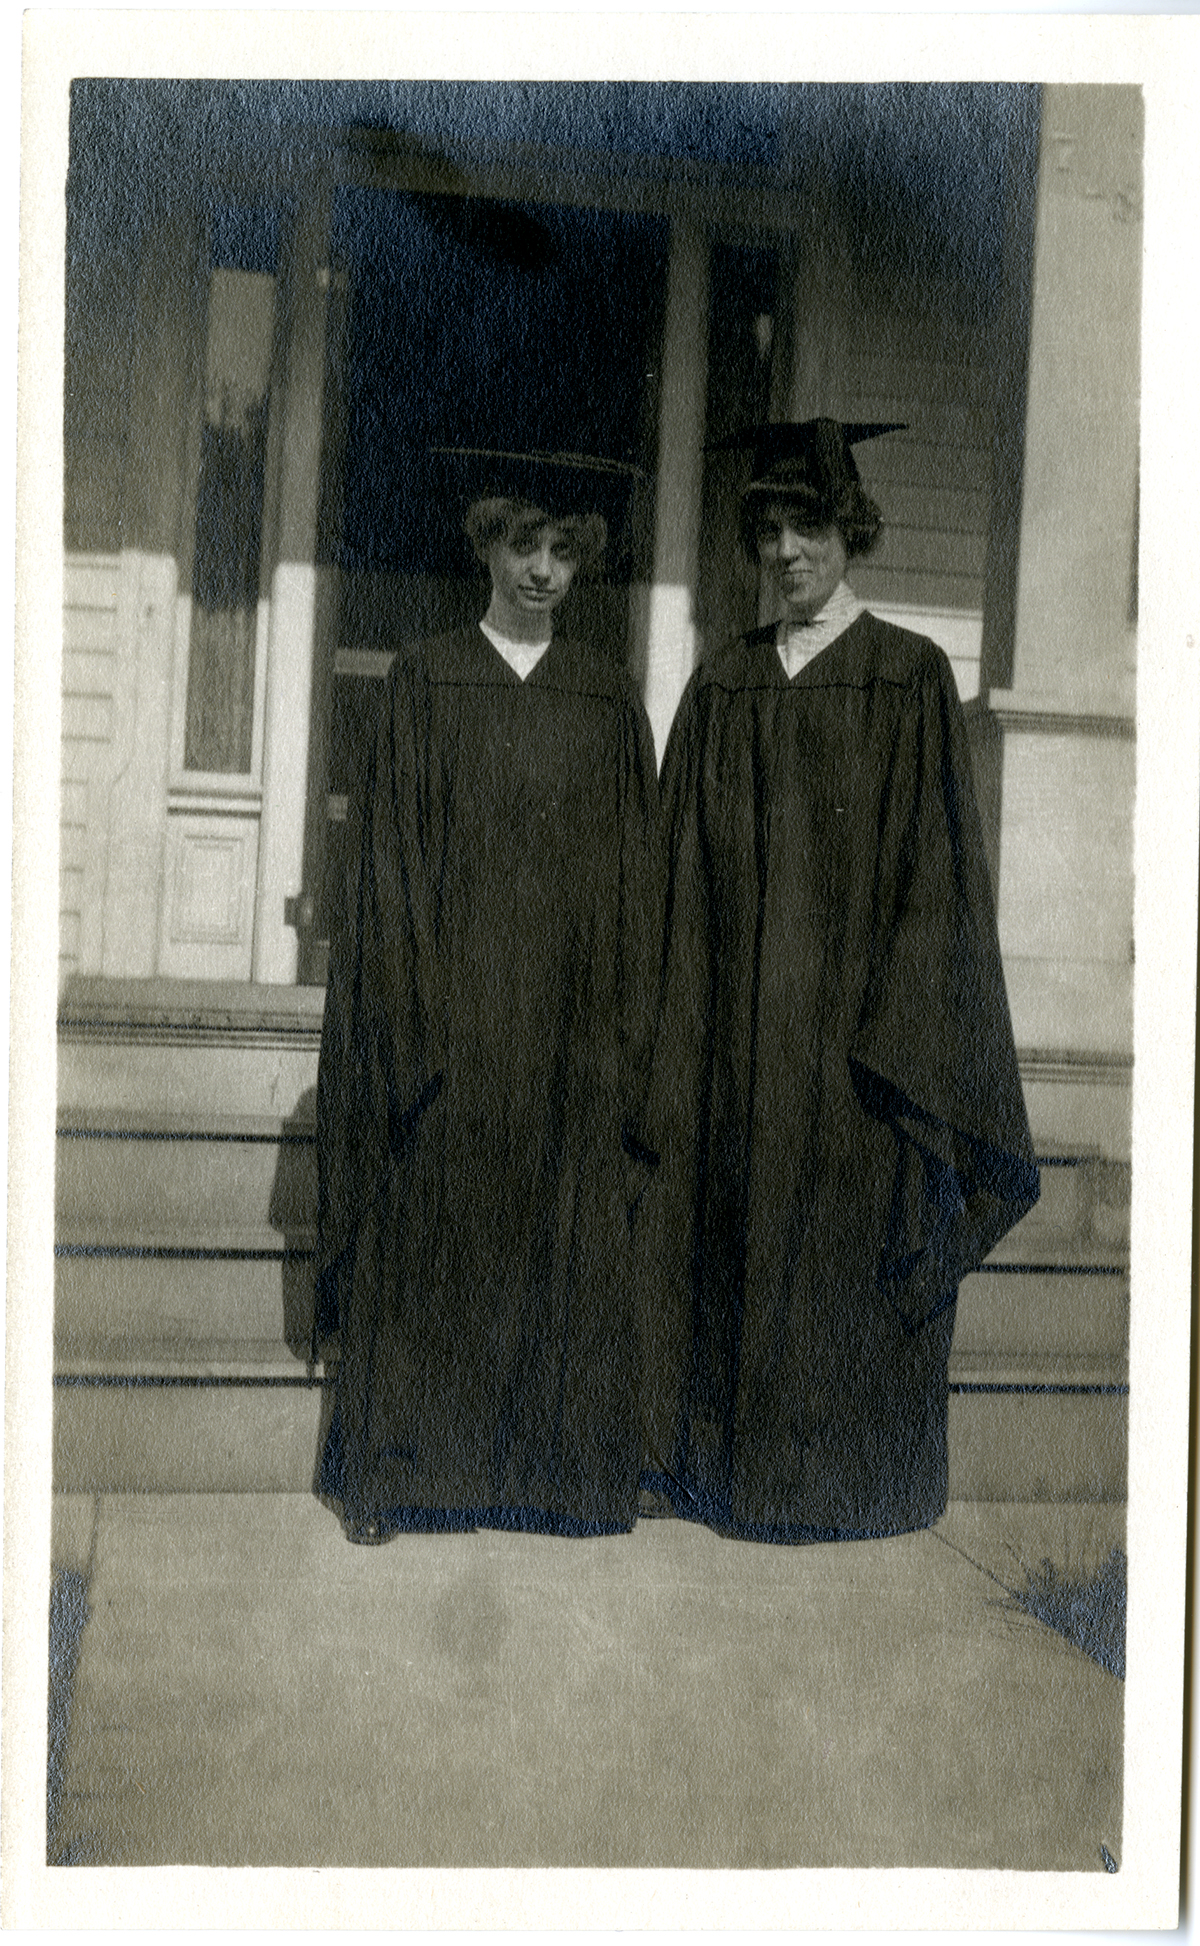 Sara with friend in cap and gown